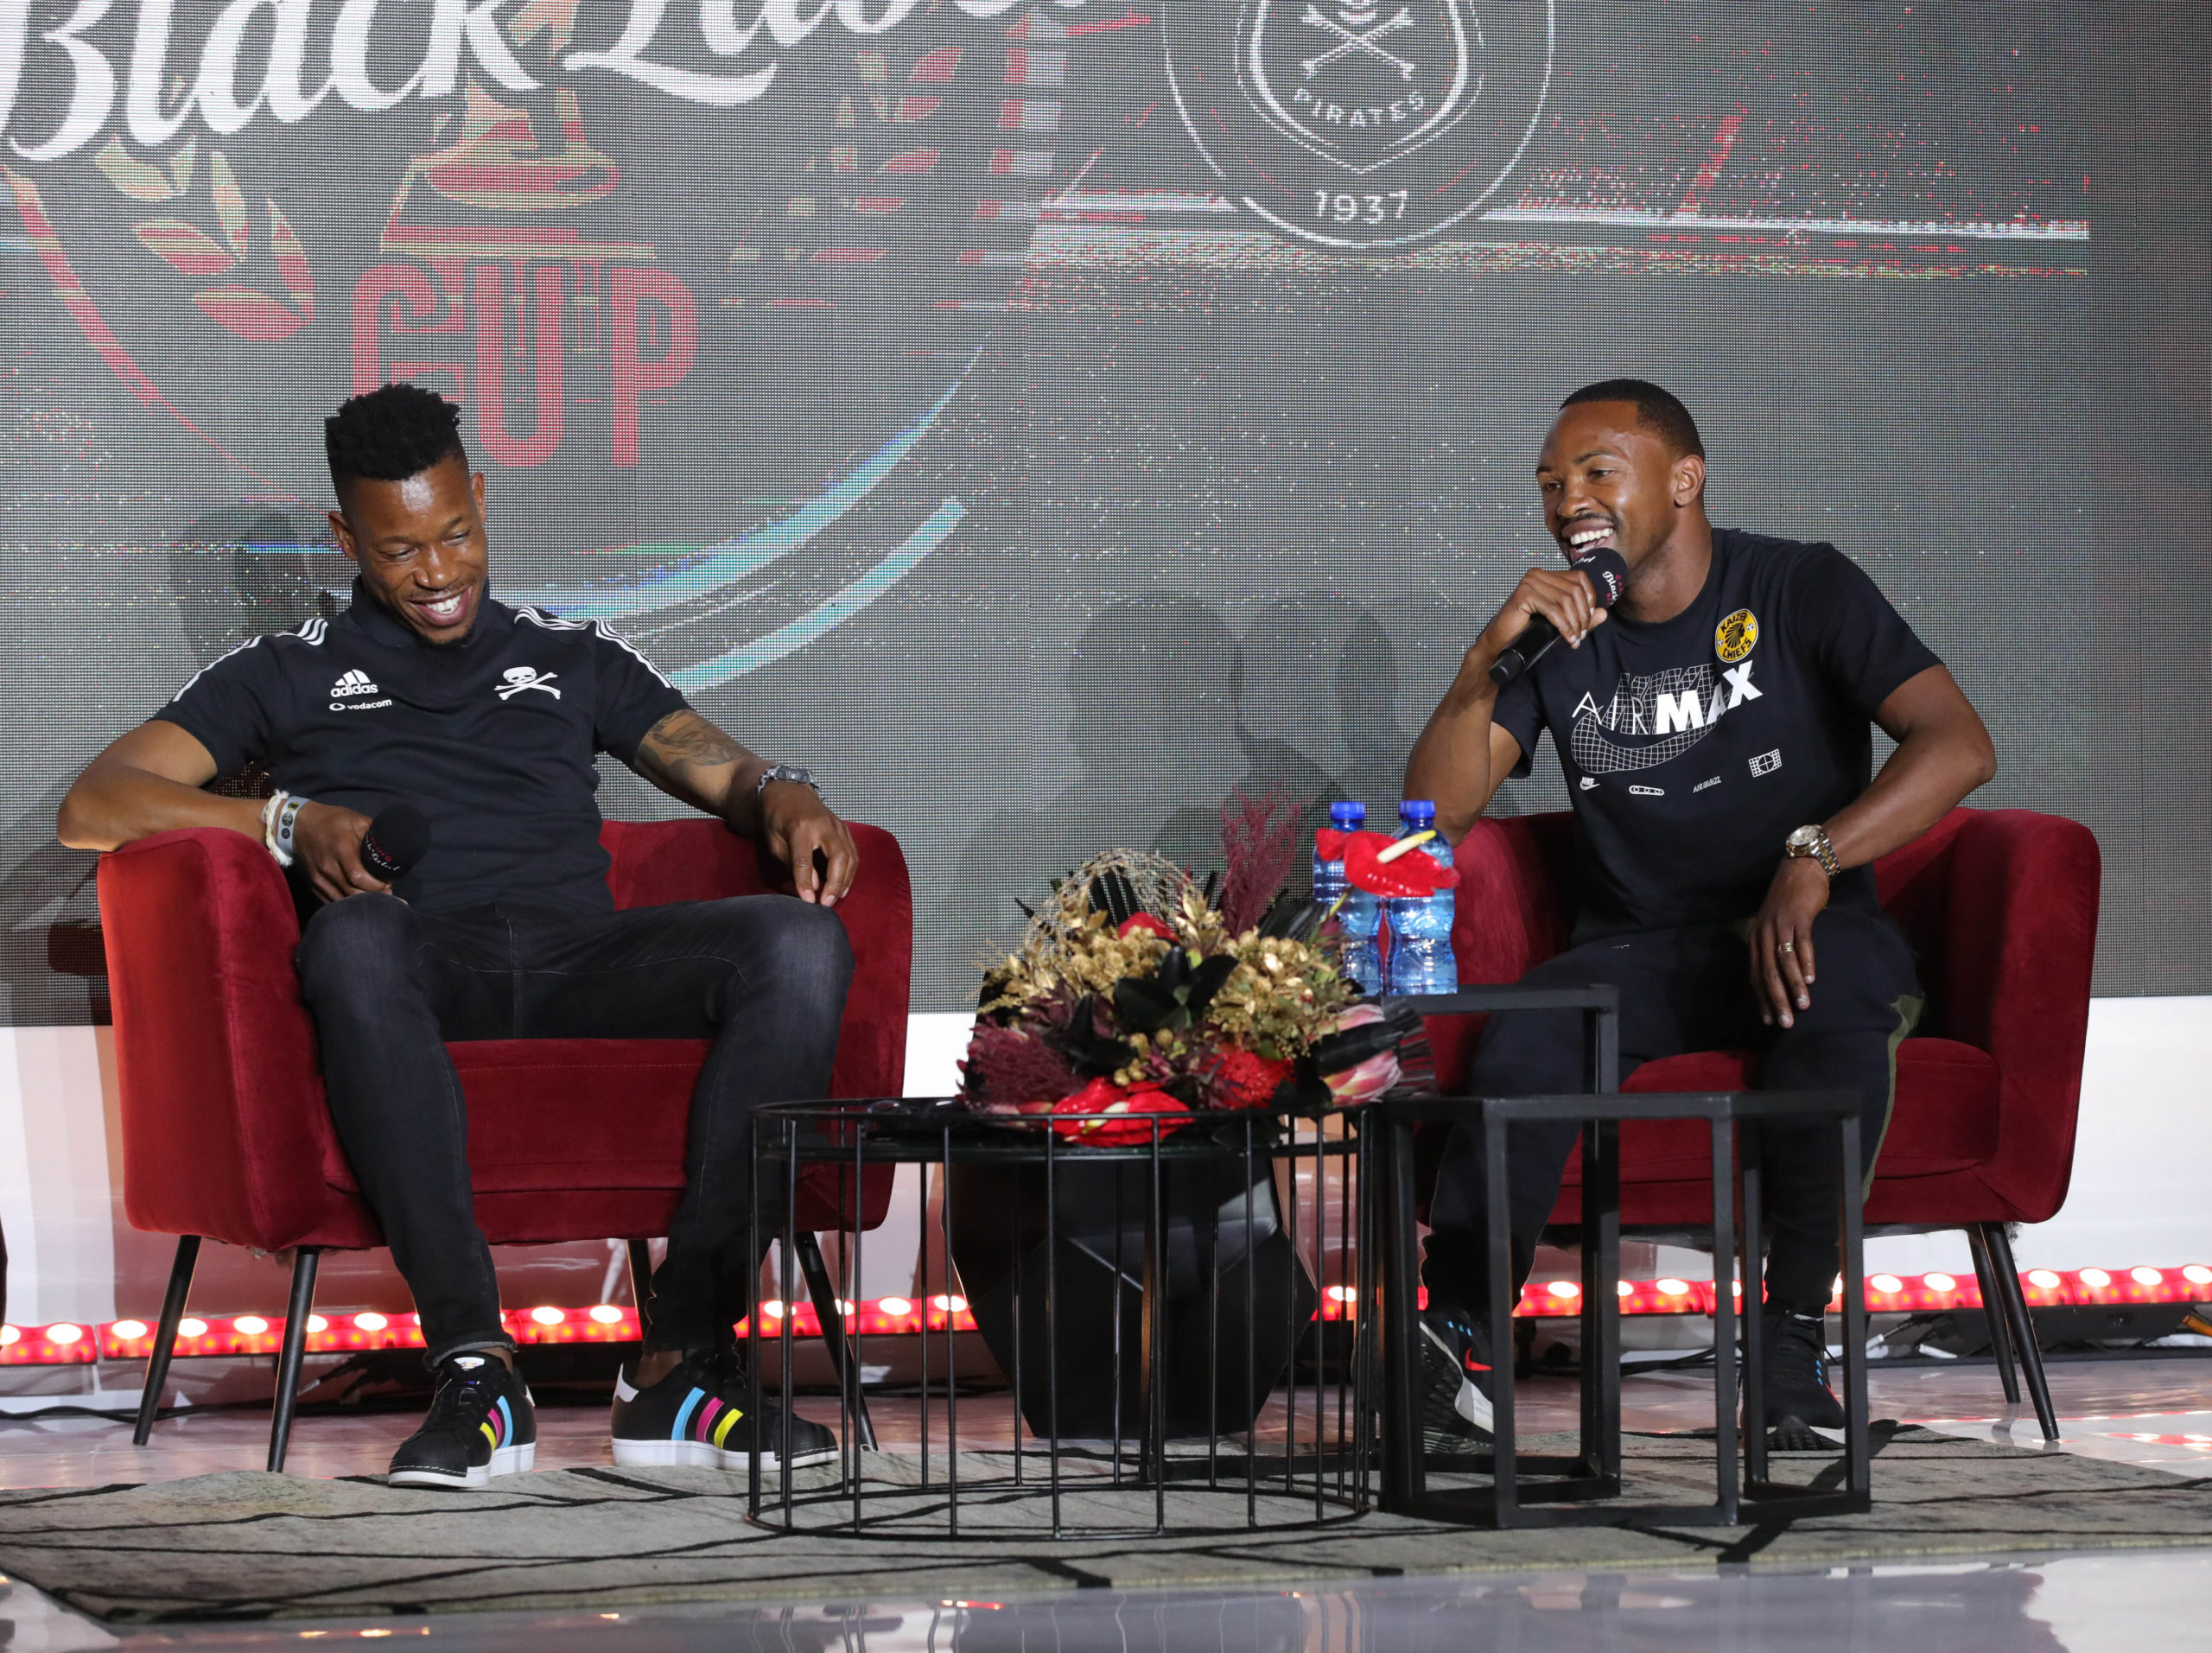 Latest Carling Black Label Cup starting line-ups for Chiefs and Pirates - The Citizen